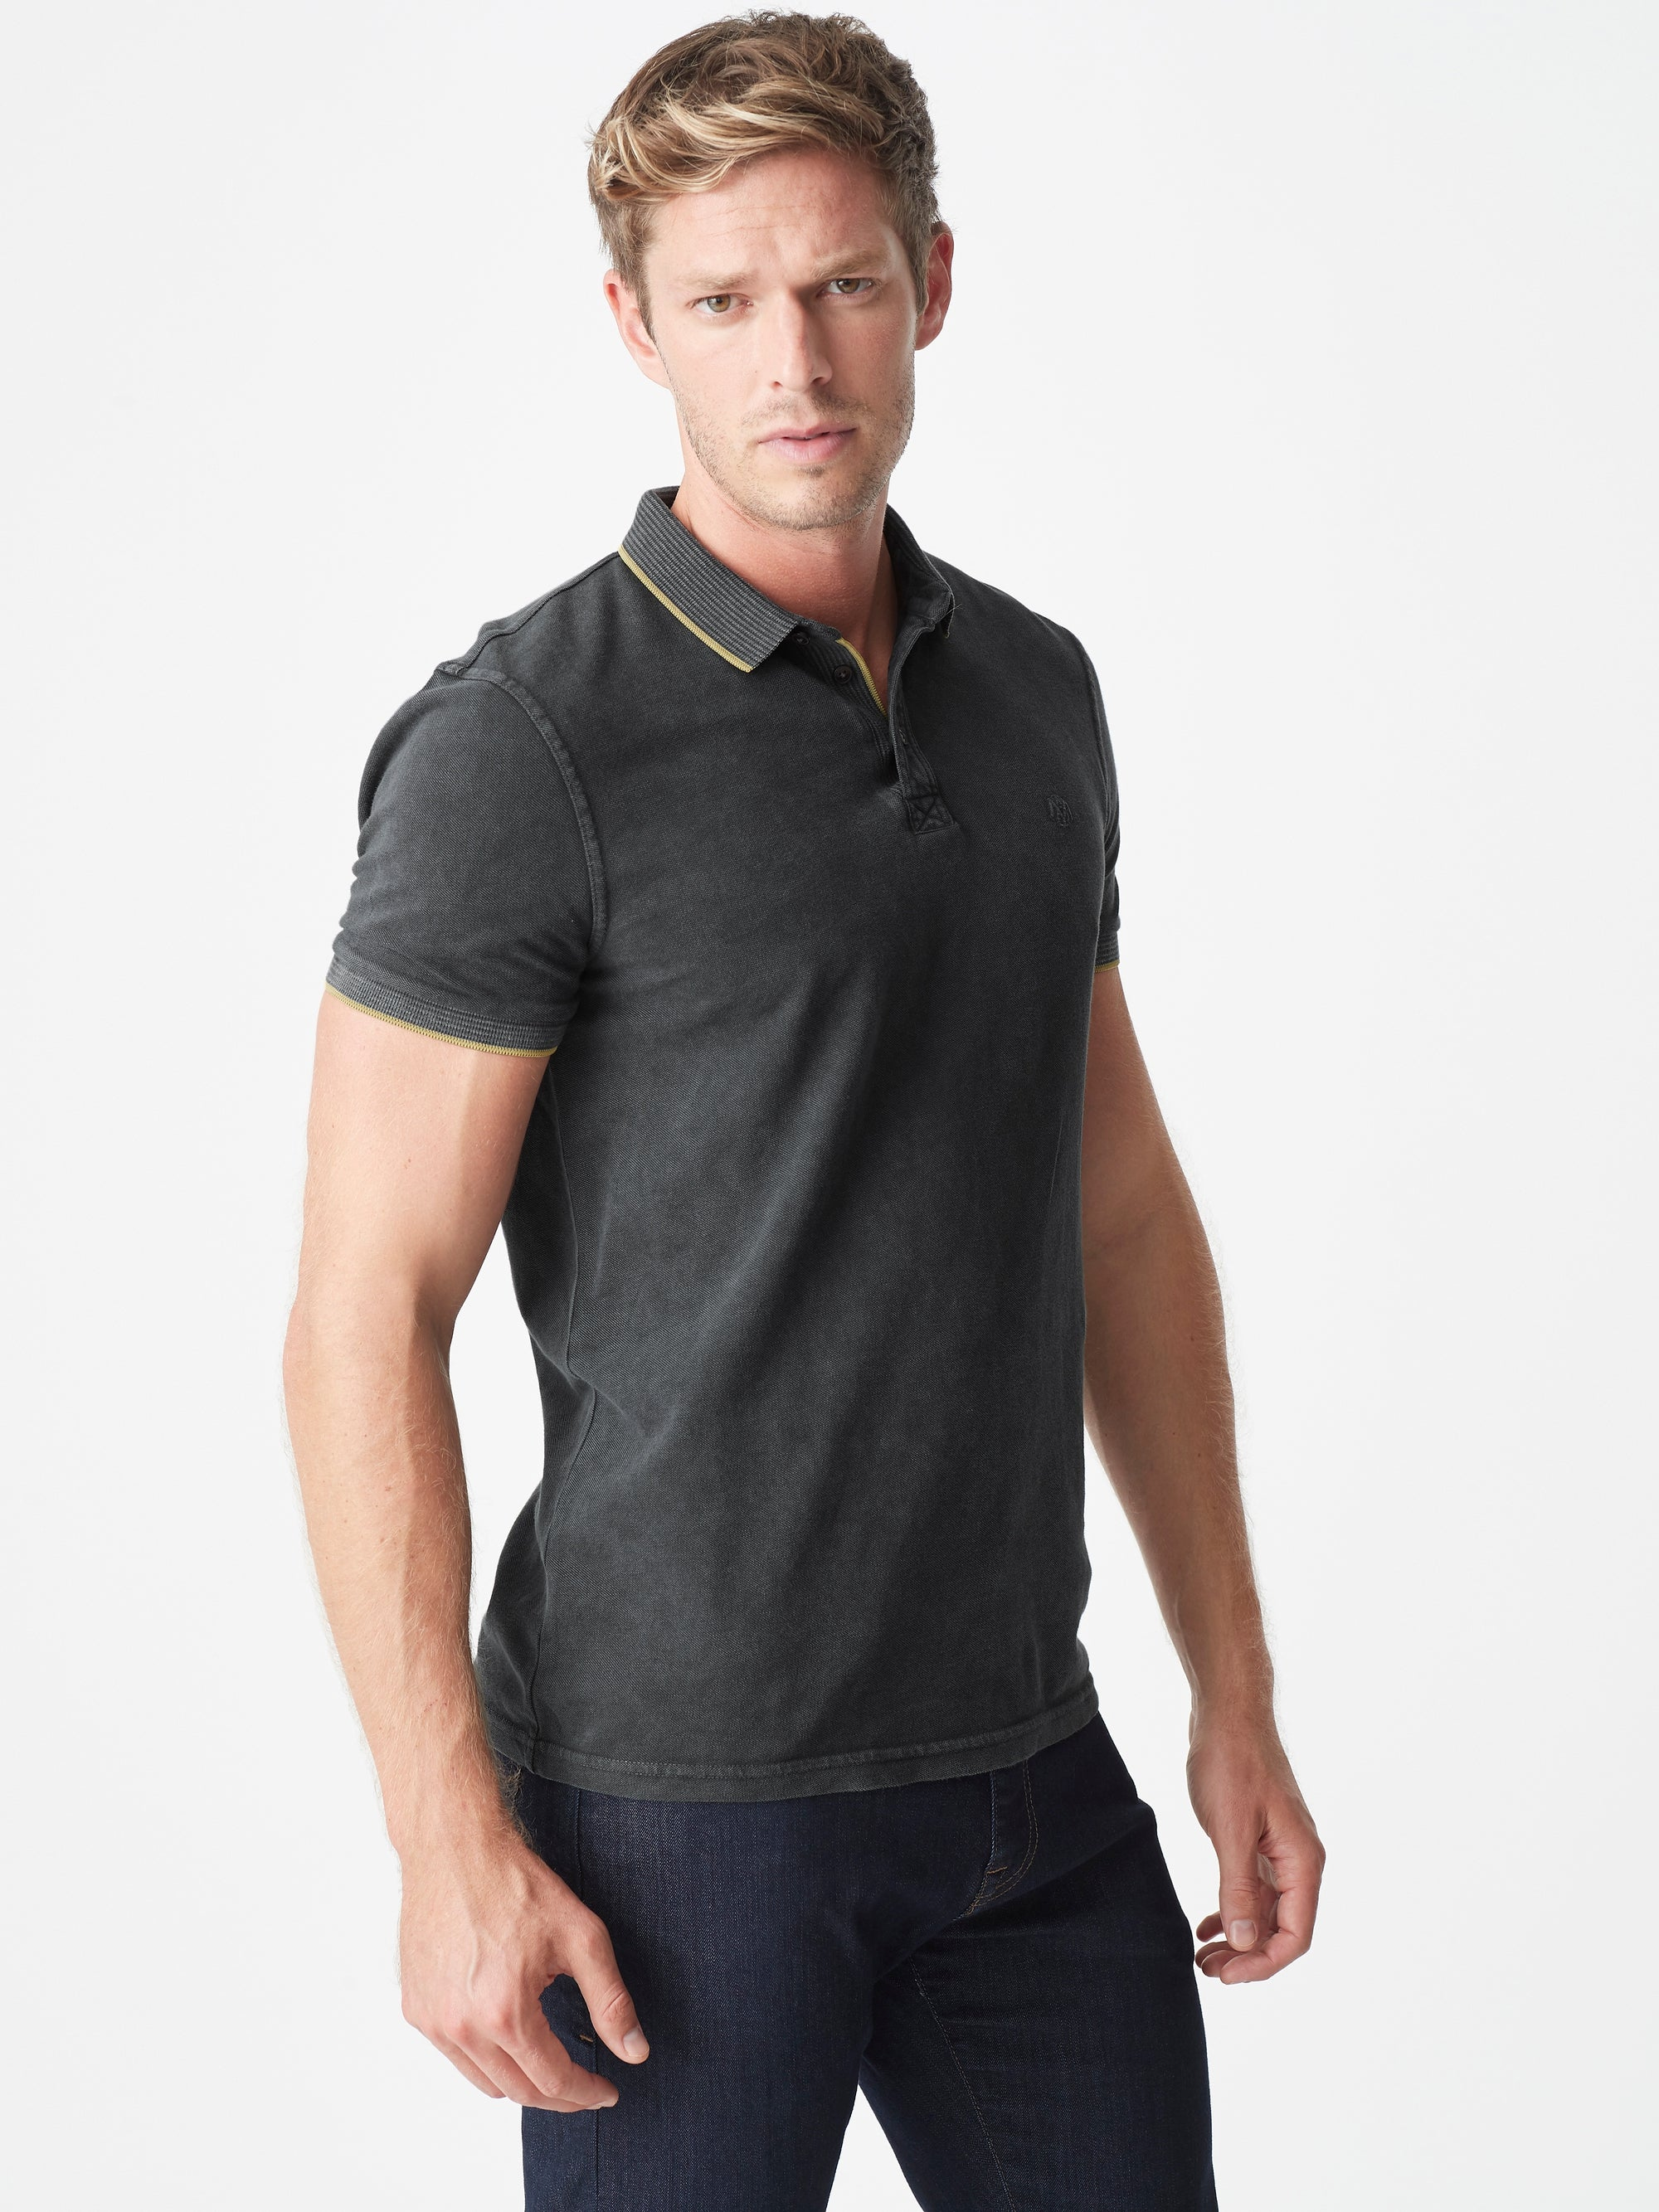 Mens Short Sleeve Polo Shirt in Dark Shadow